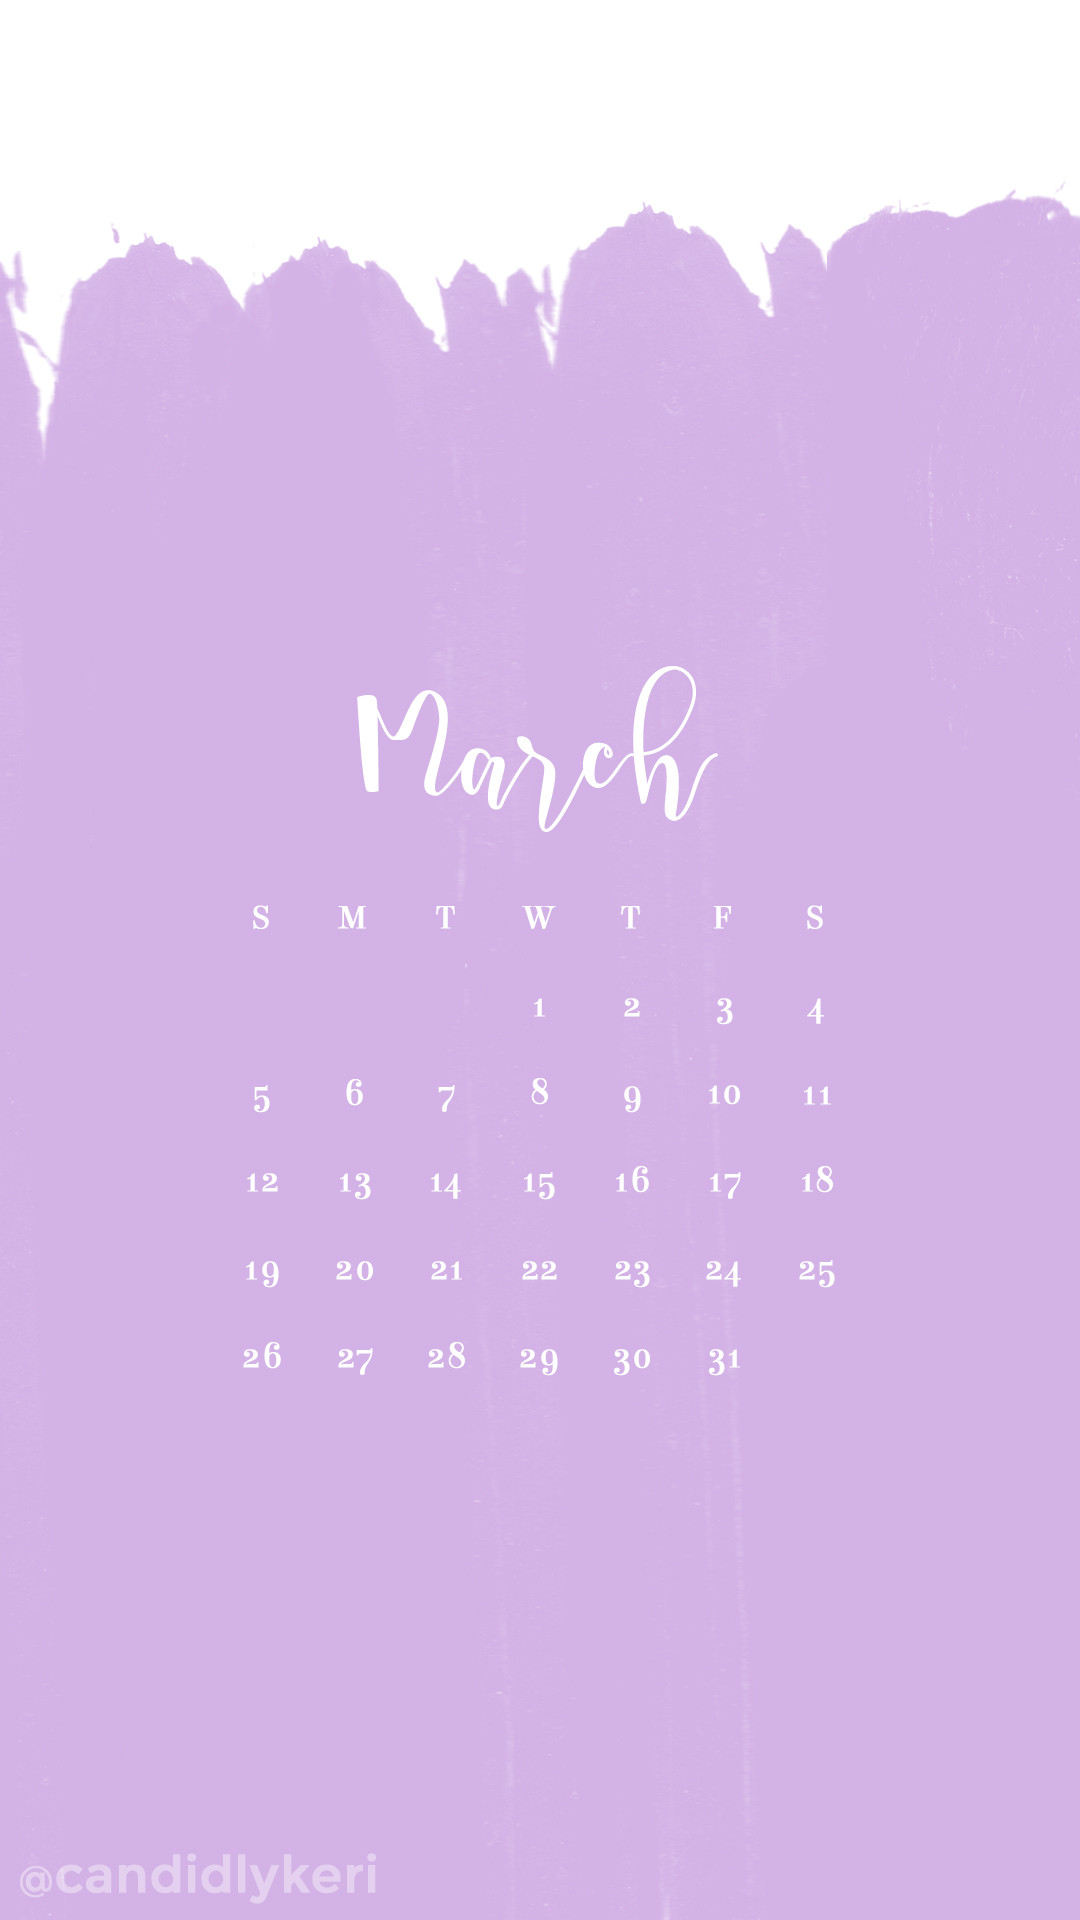 Lilac light purple paint stripes March calendar 2017 wallpaper you can  download for free on the